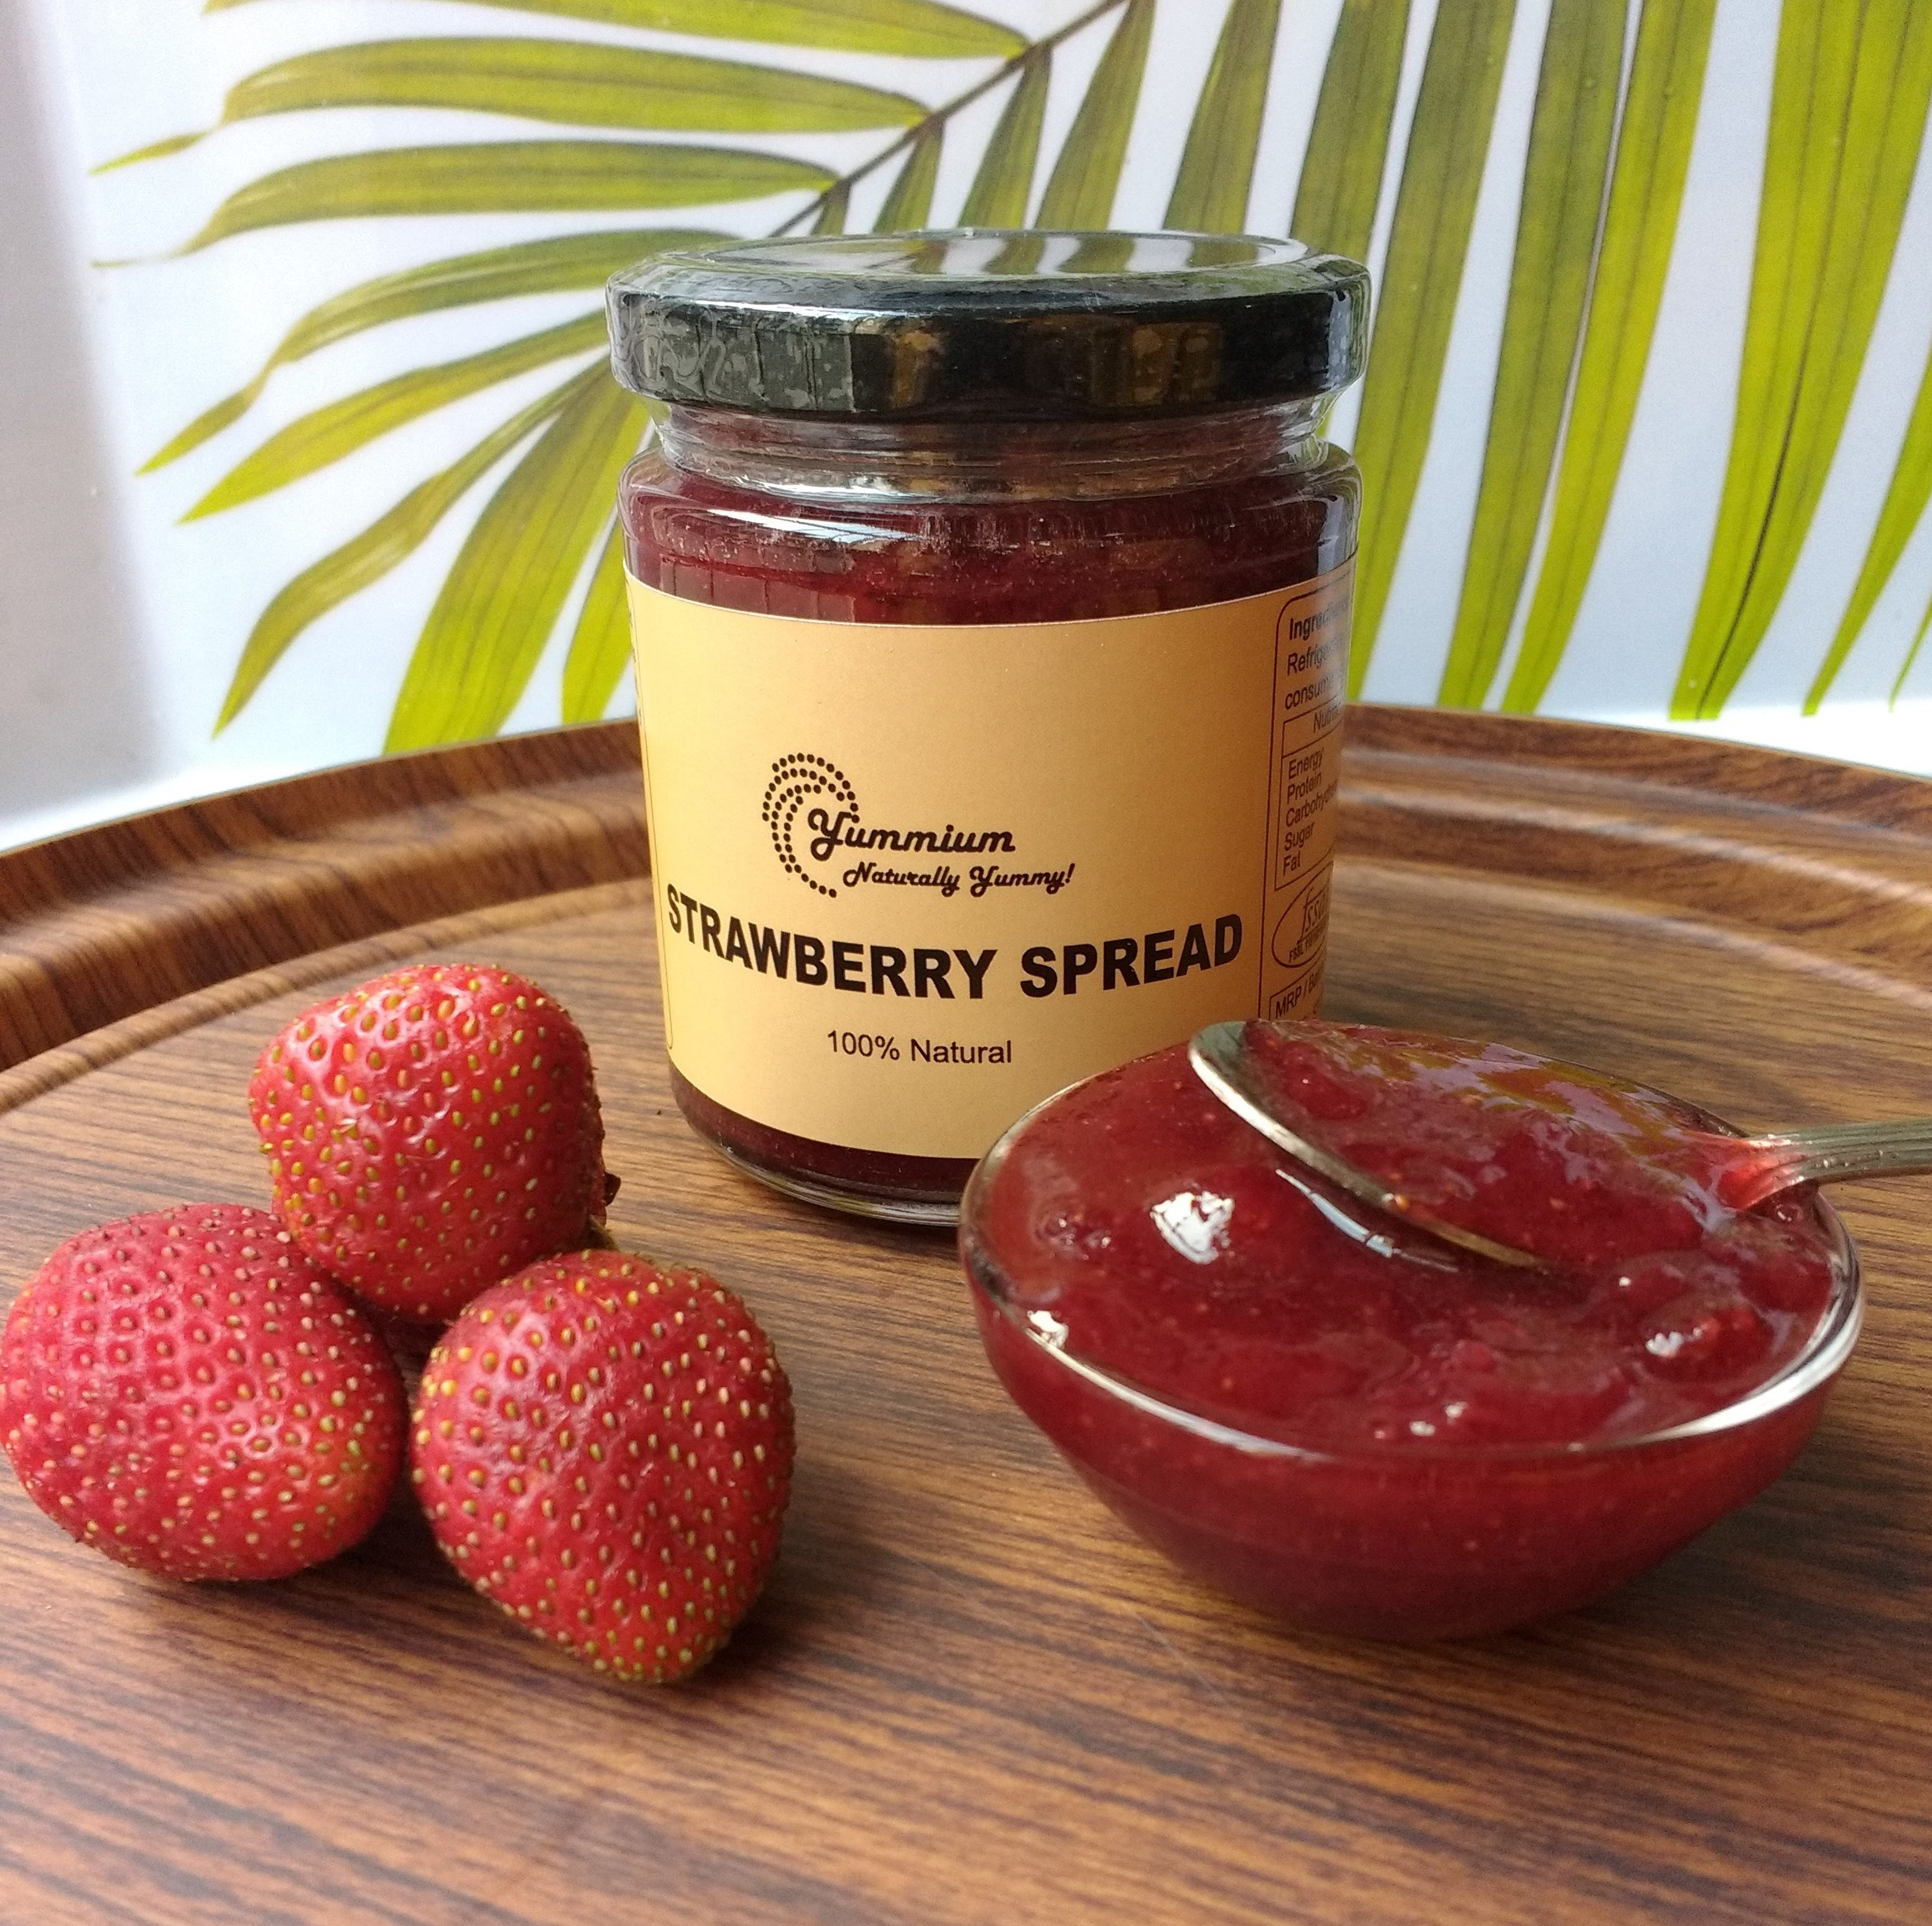 All-Natural Strawberry Spread